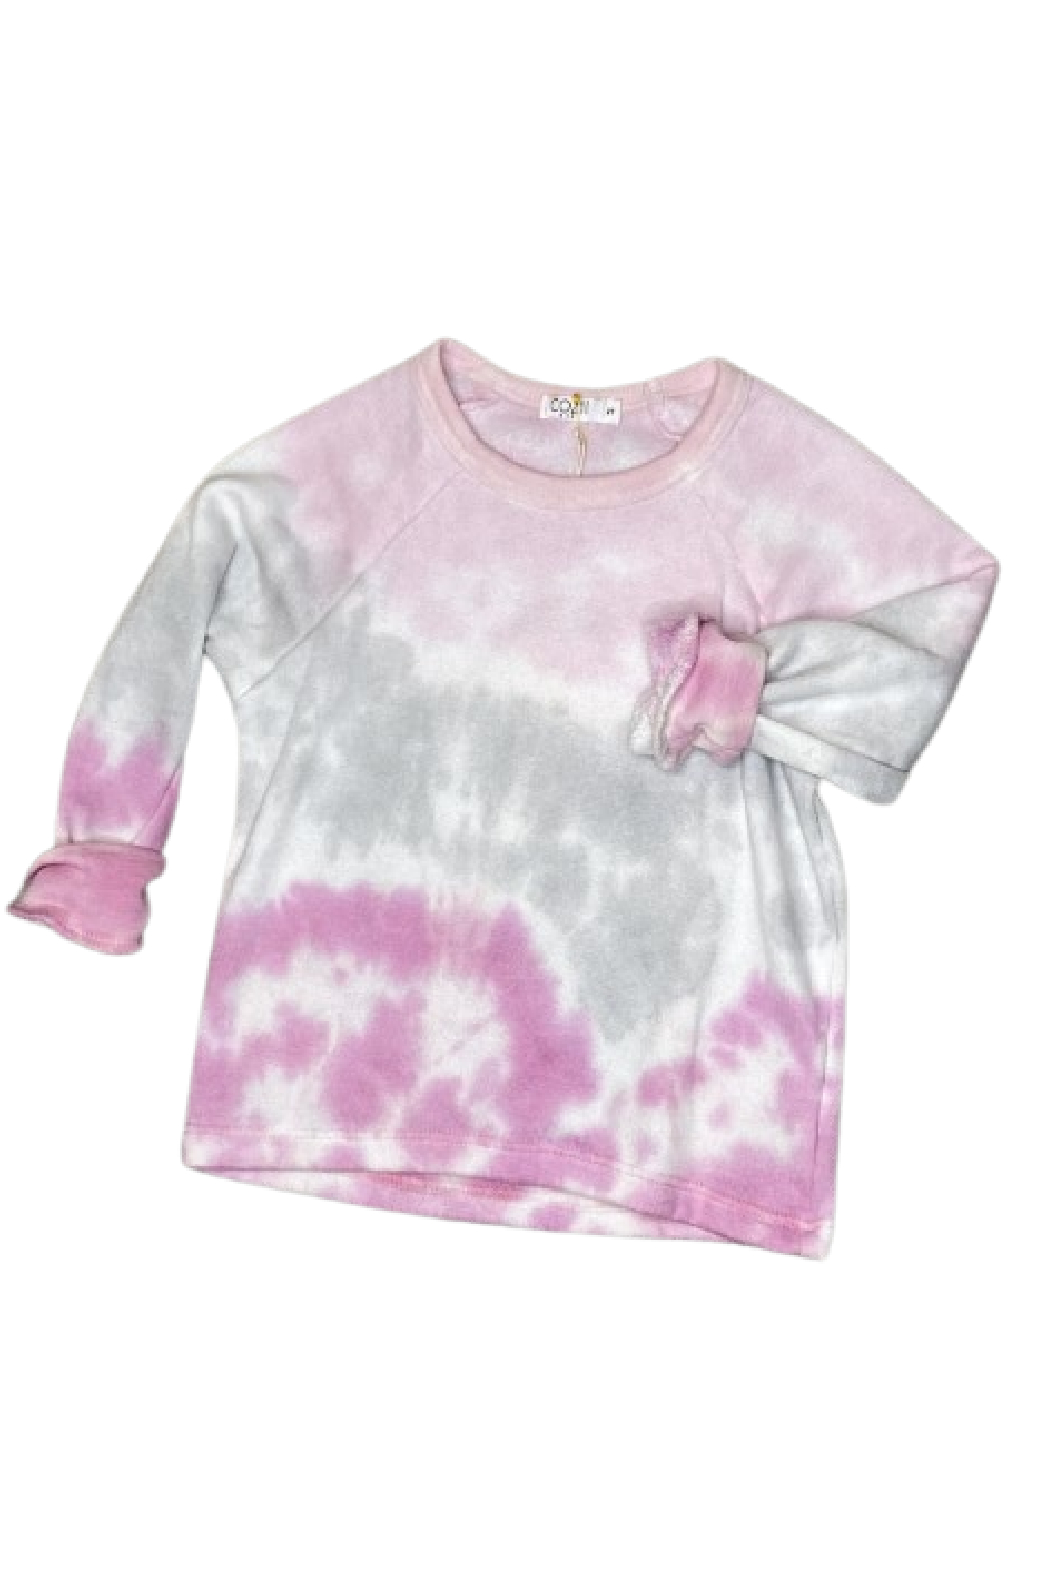 Cozii Pink Tie Dye Pullover Crew - Main Image